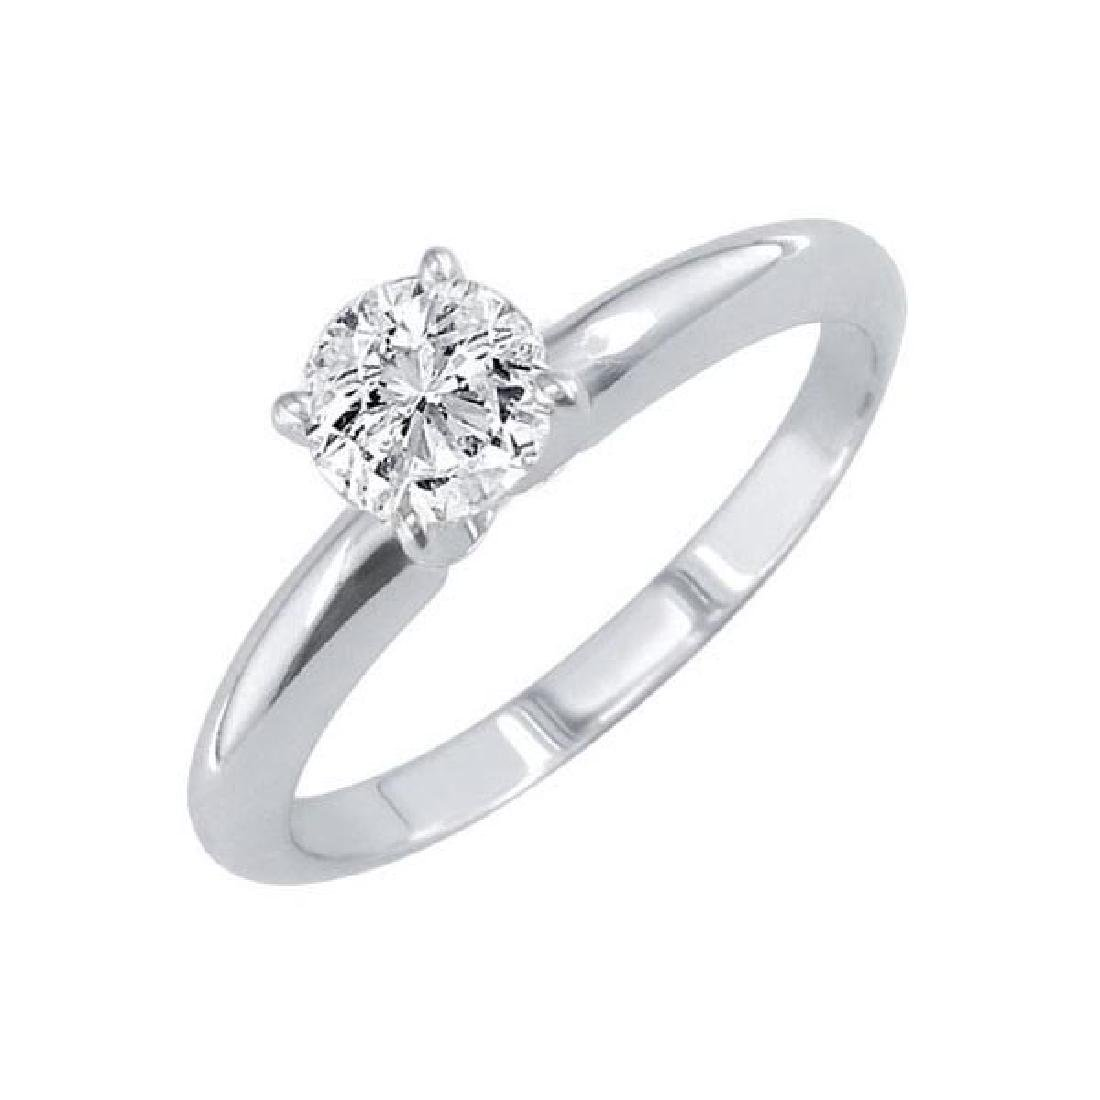 Certified 1.01 CTW Round Diamond Solitaire 14k Ring D/S